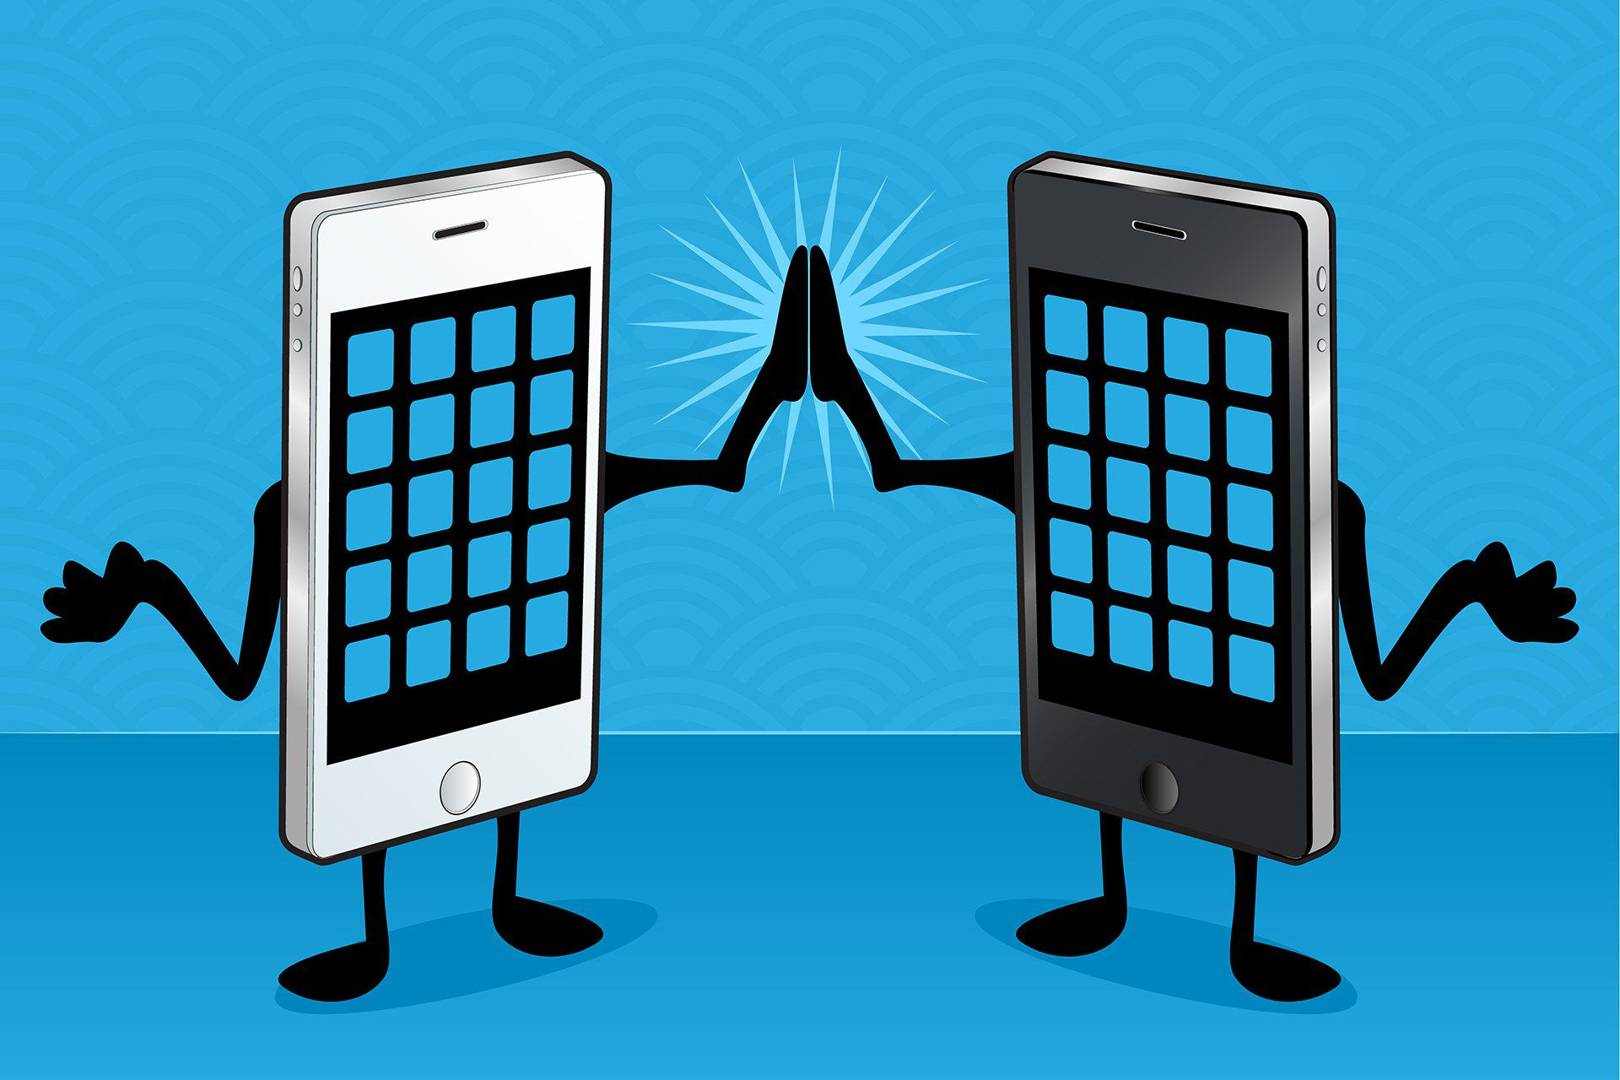 0800 and 0808 calls now free on UK mobiles | WIRED UK